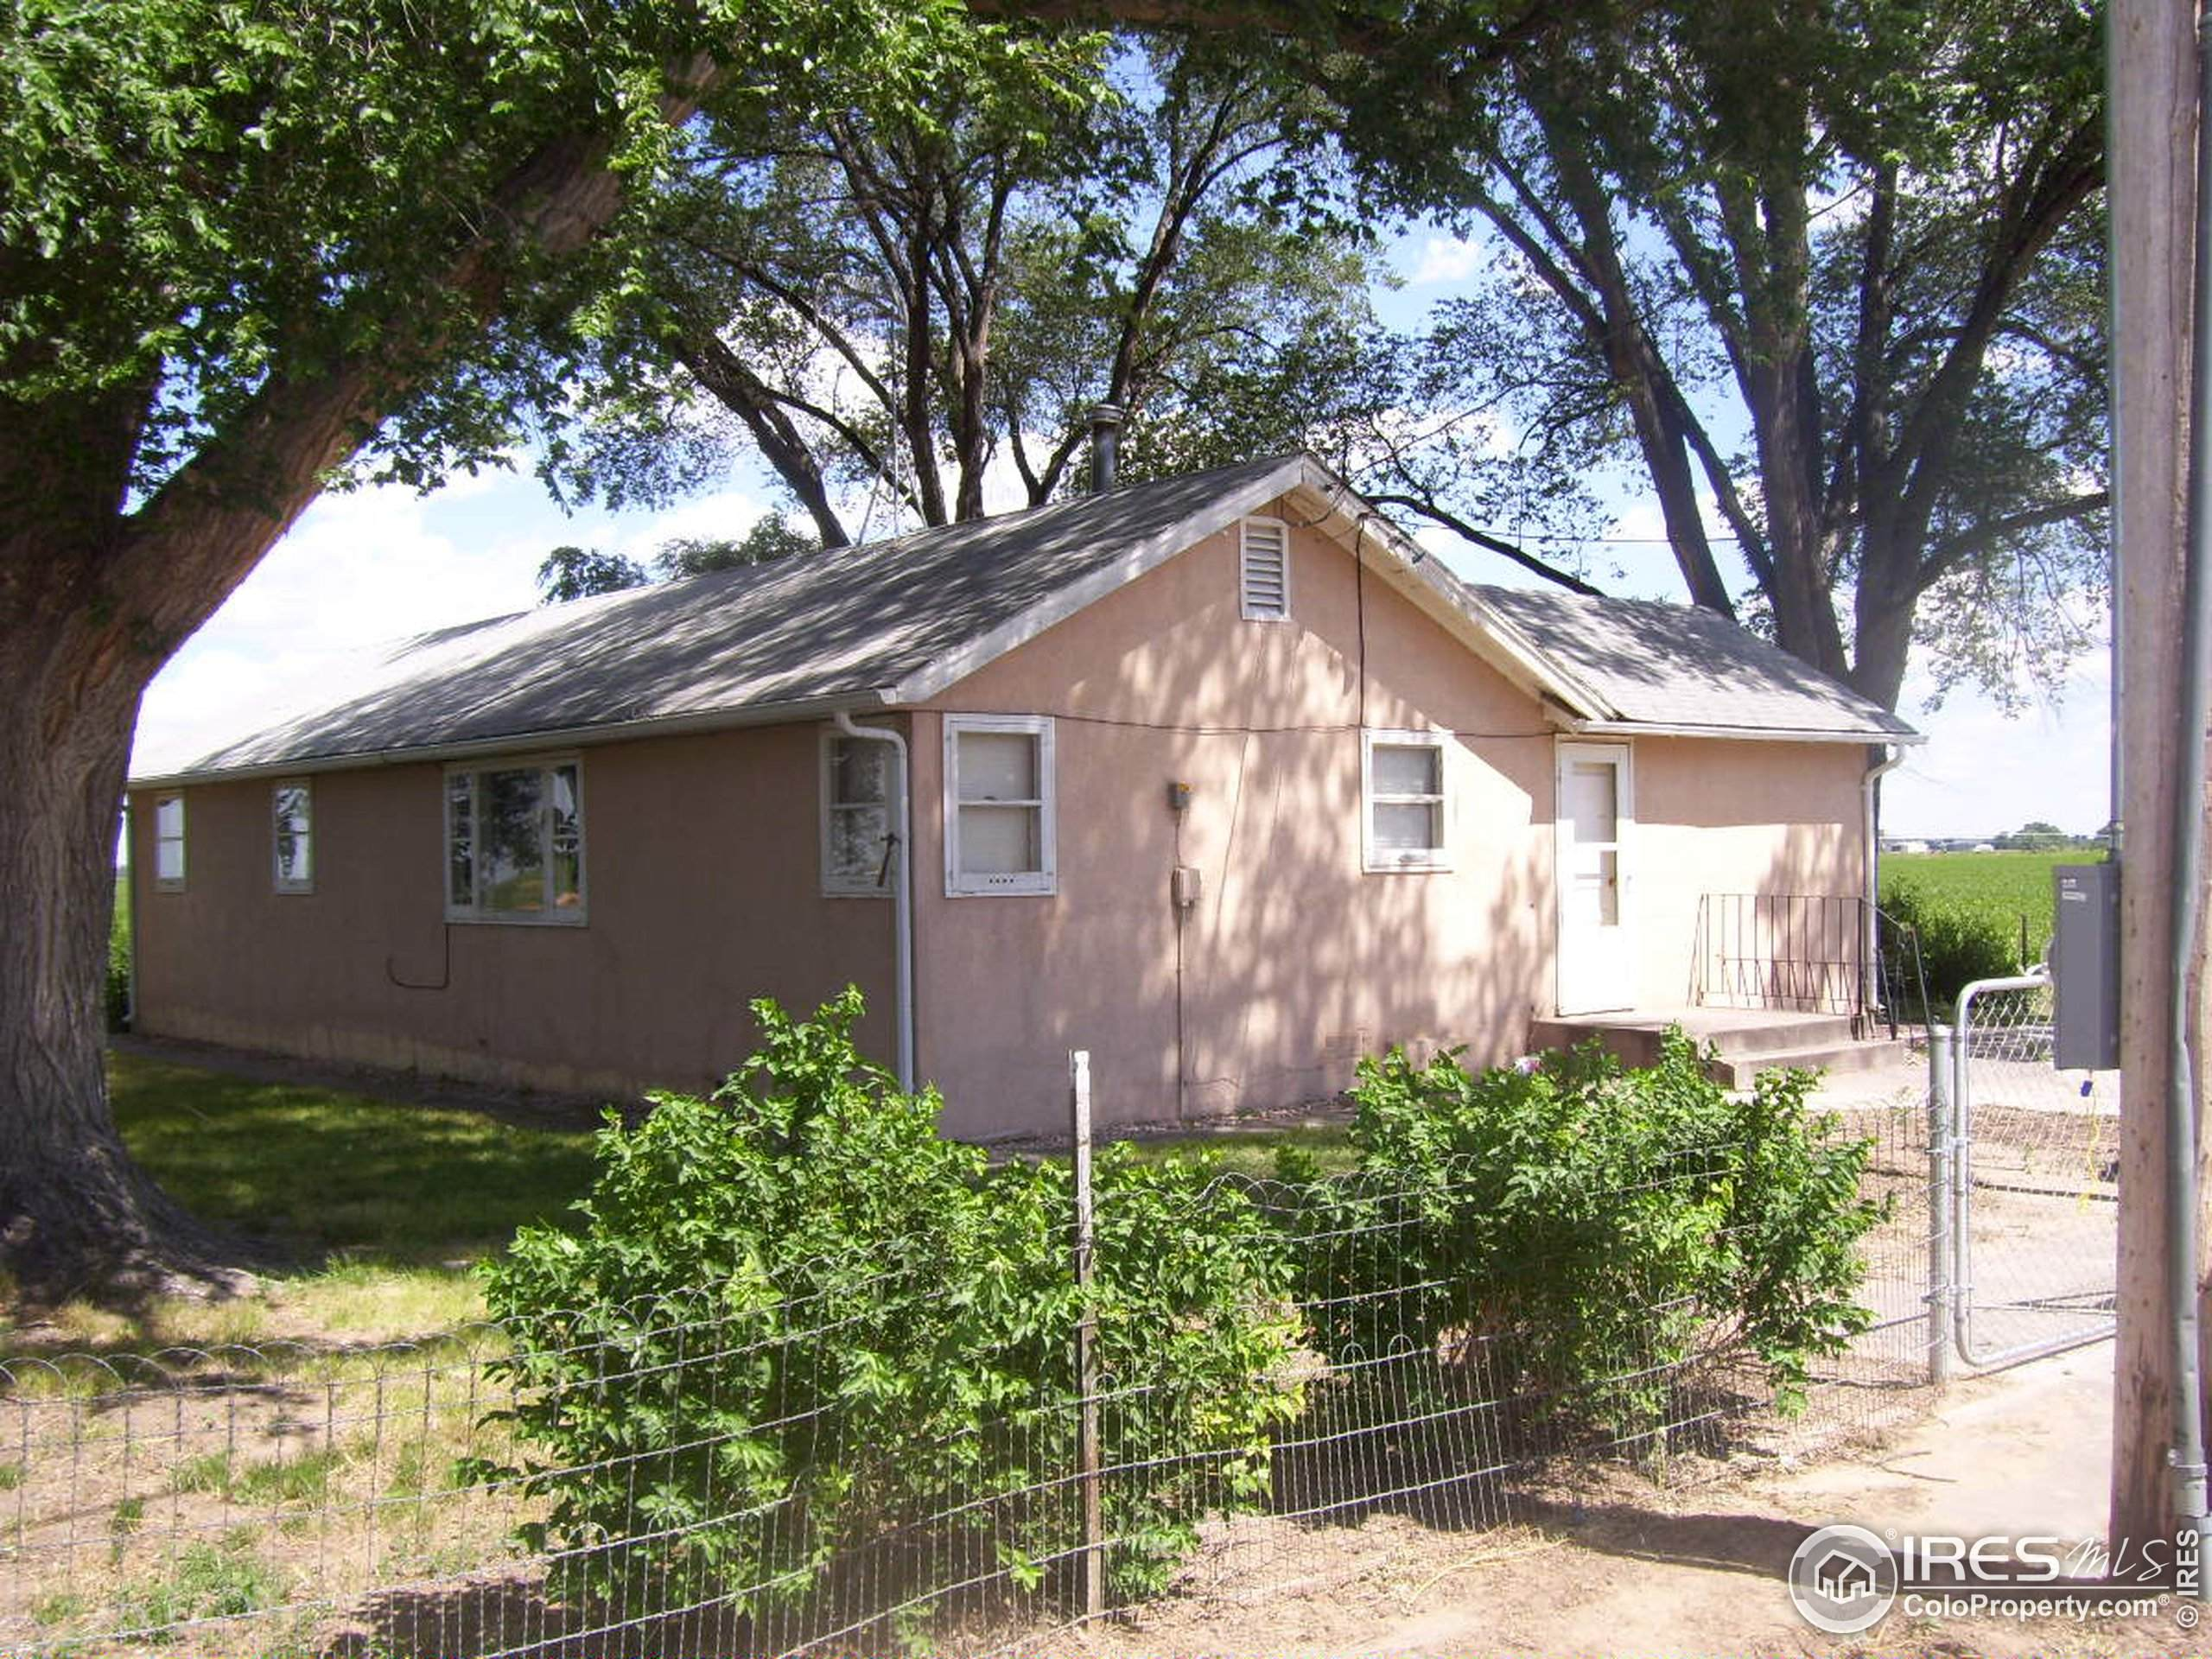 1419 Chickadee St, Loveland, CO 80537 (MLS #933192) :: J2 Real Estate Group at Remax Alliance